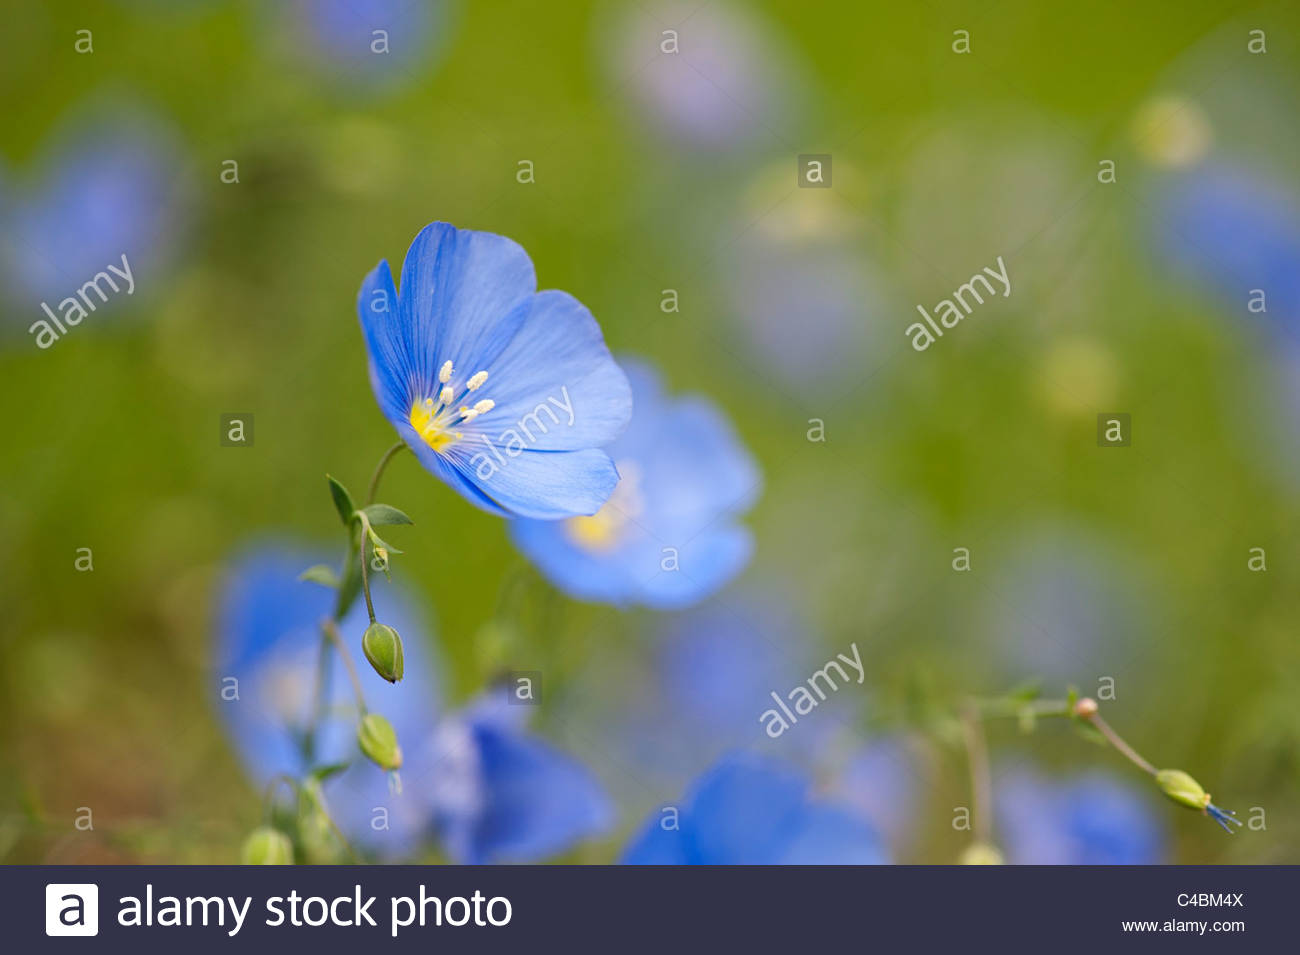 Linum Perenne, Blue Flax flowers - Stock Image